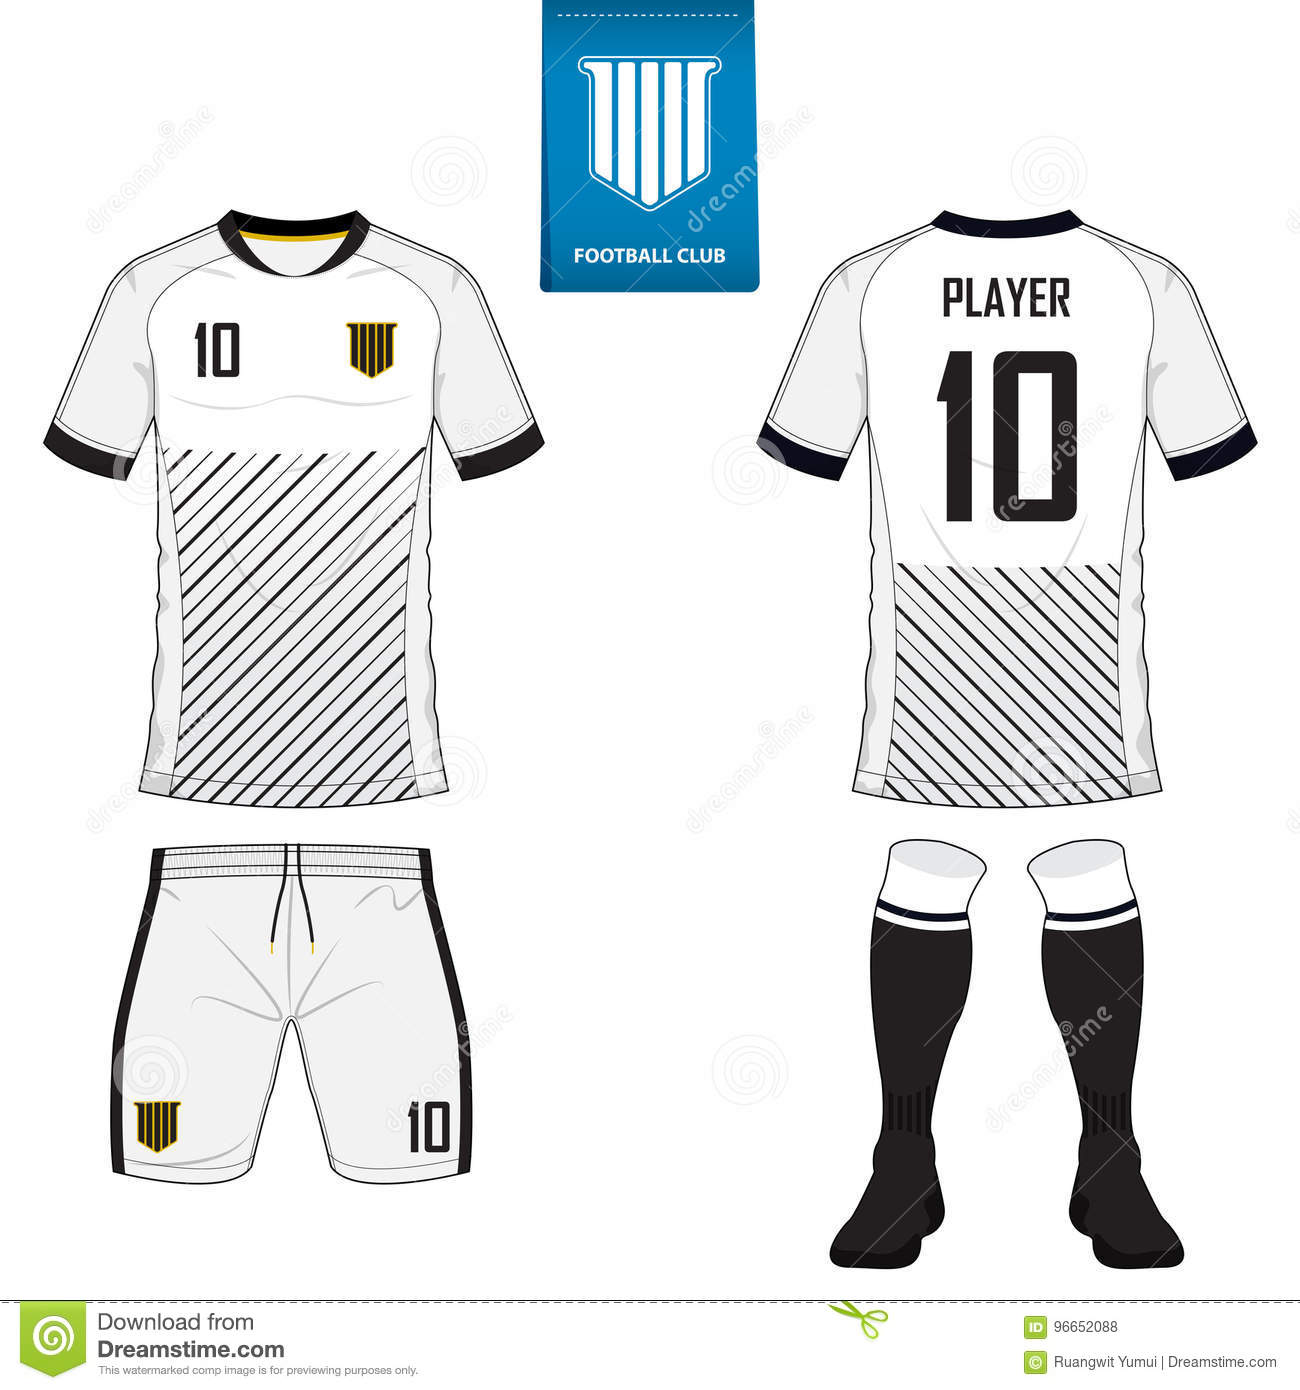 Soccer Jersey Or Football Kit Template For Club Shirt Mock Up Front